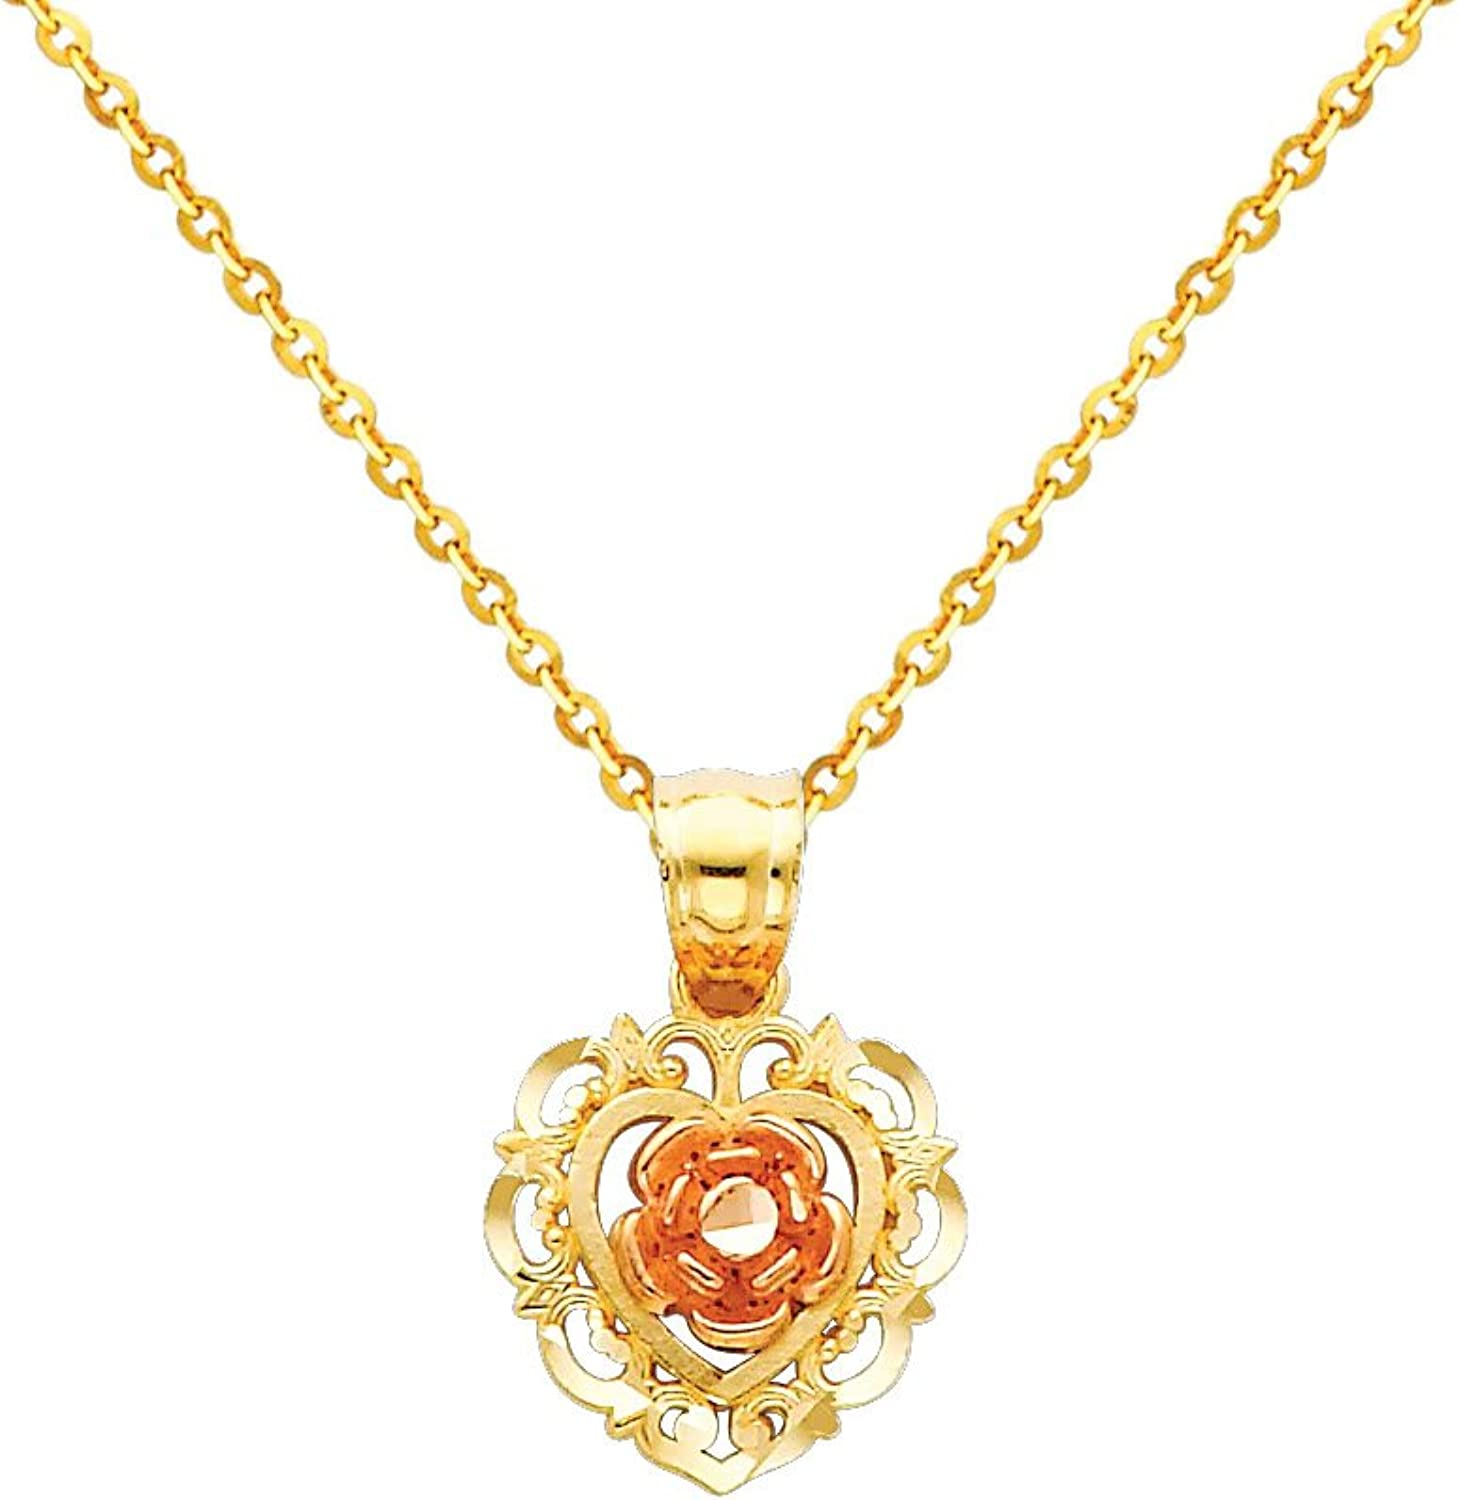 14k Tri color gold Flower Charm Pendant with 1.2mm Side Diamondcut Rolo Cable Chain Necklace